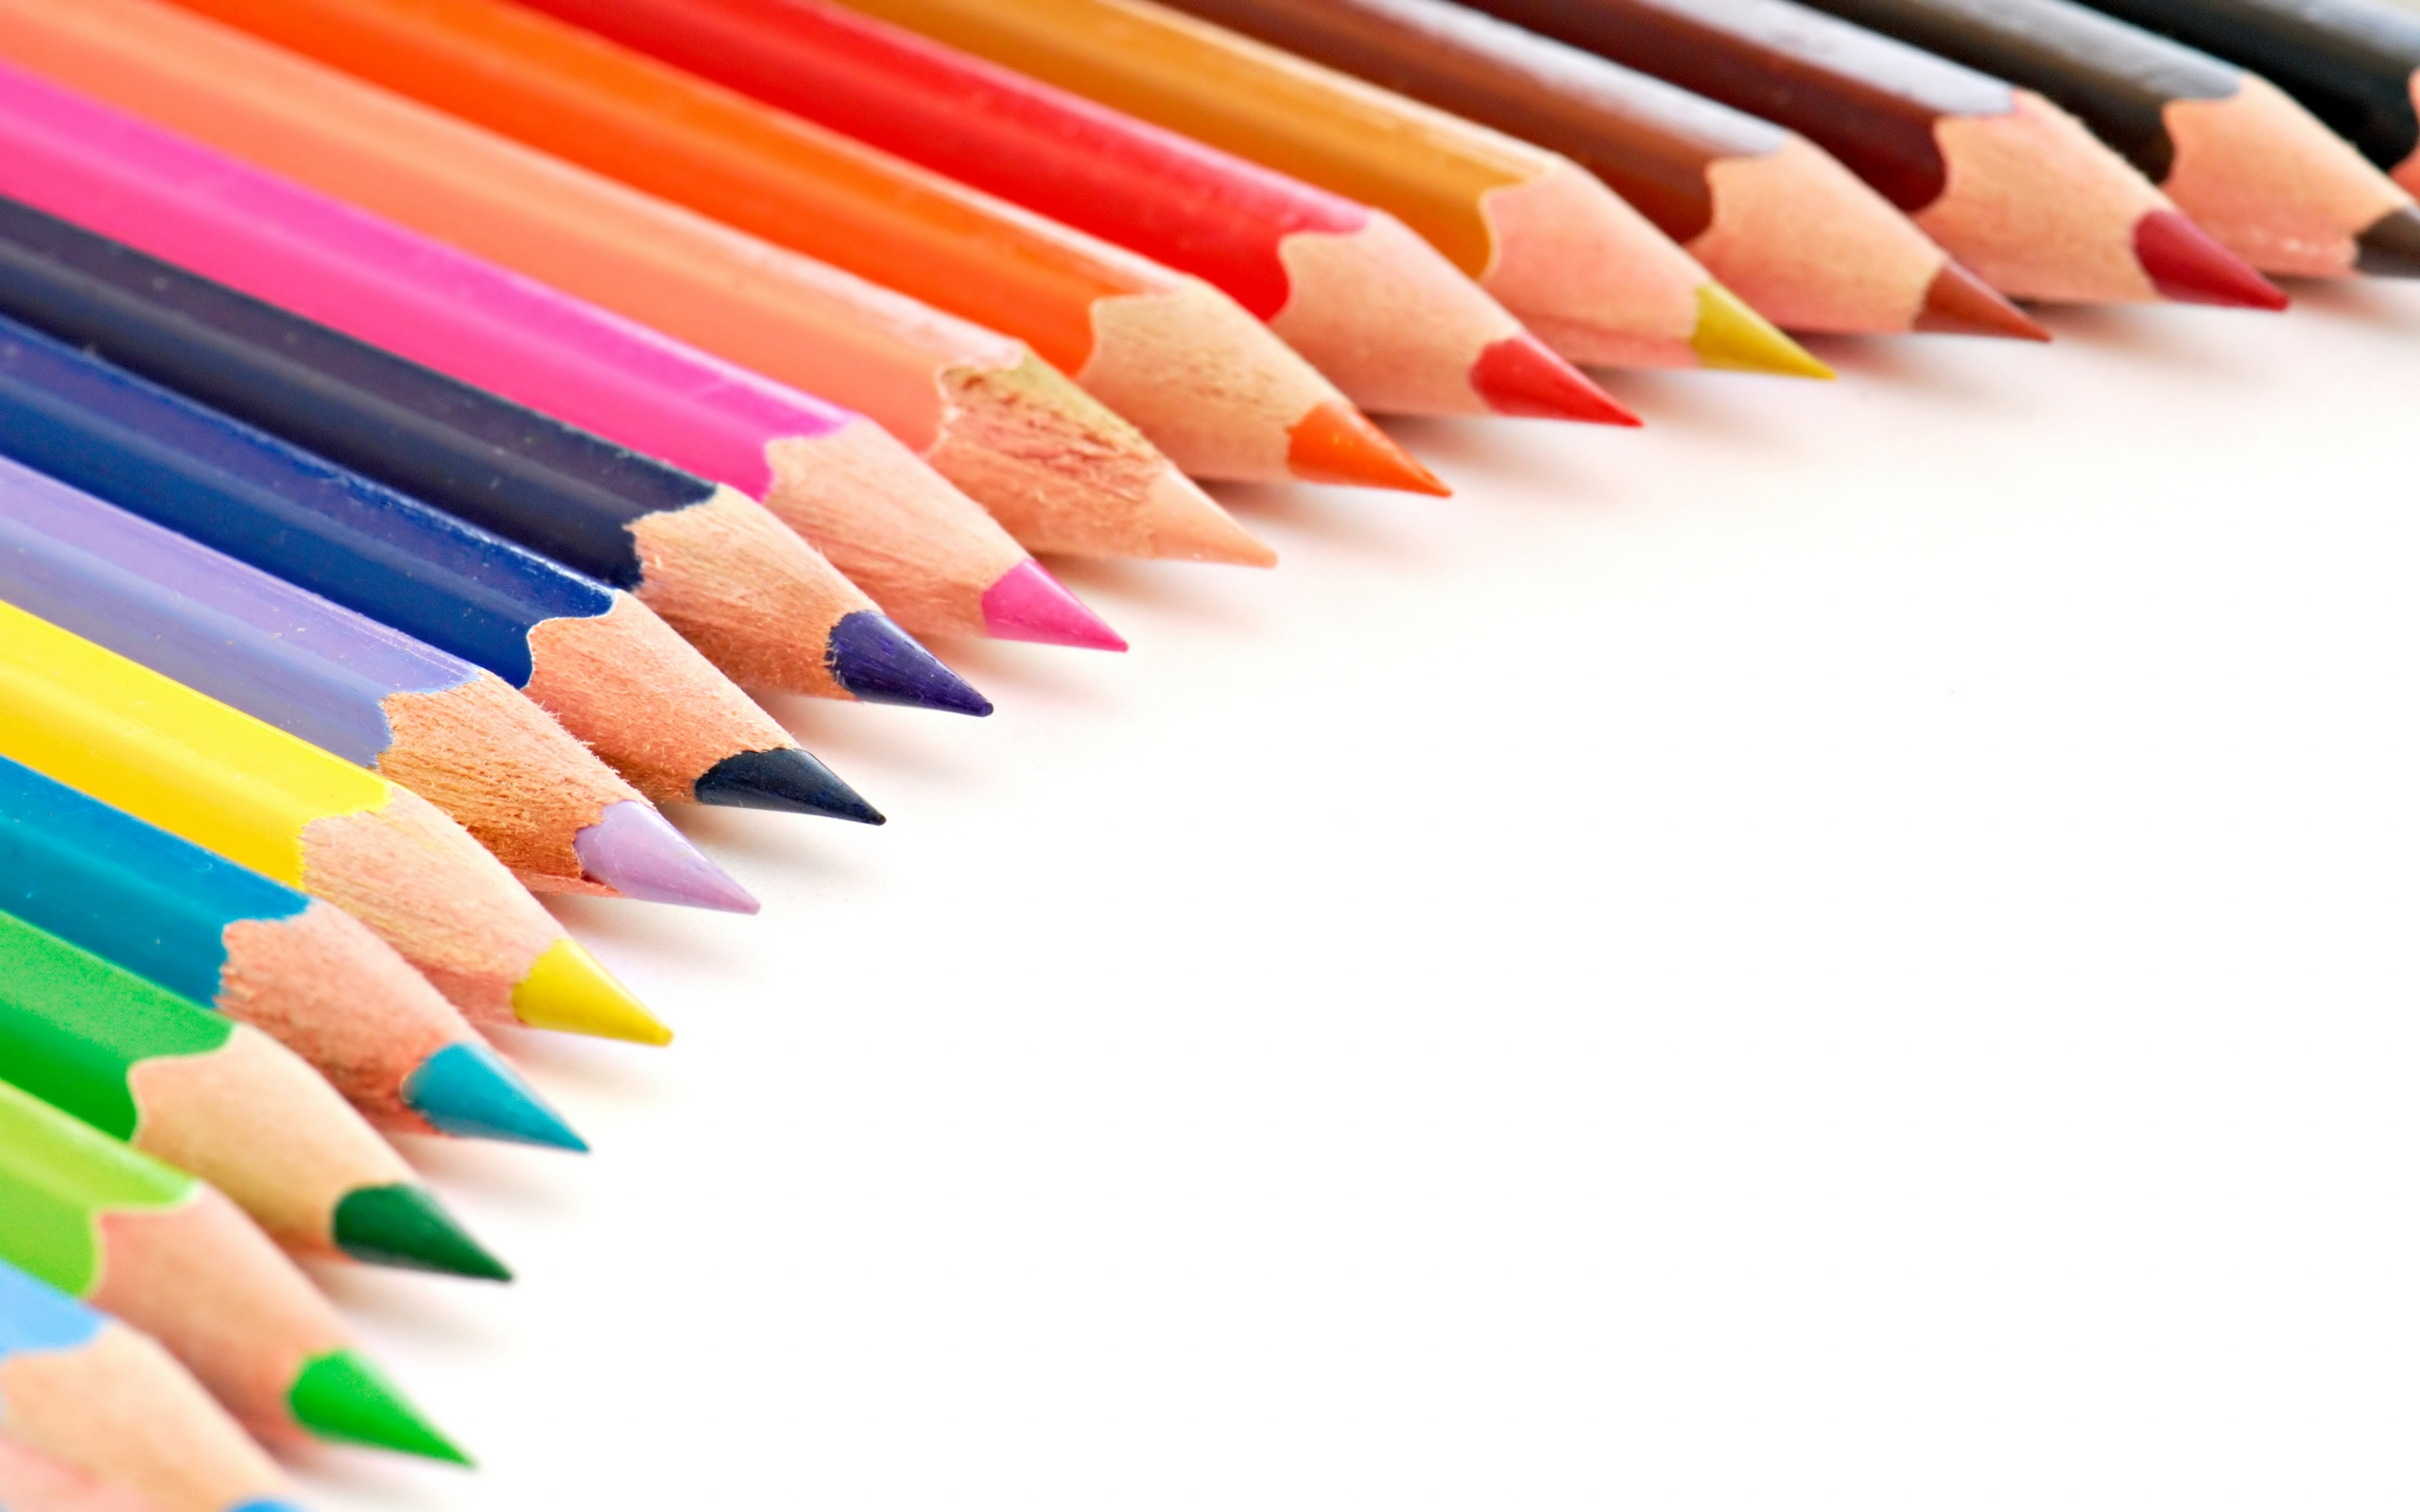 Cool Colored Pencils Wallpaper 40937 1920x1200 px